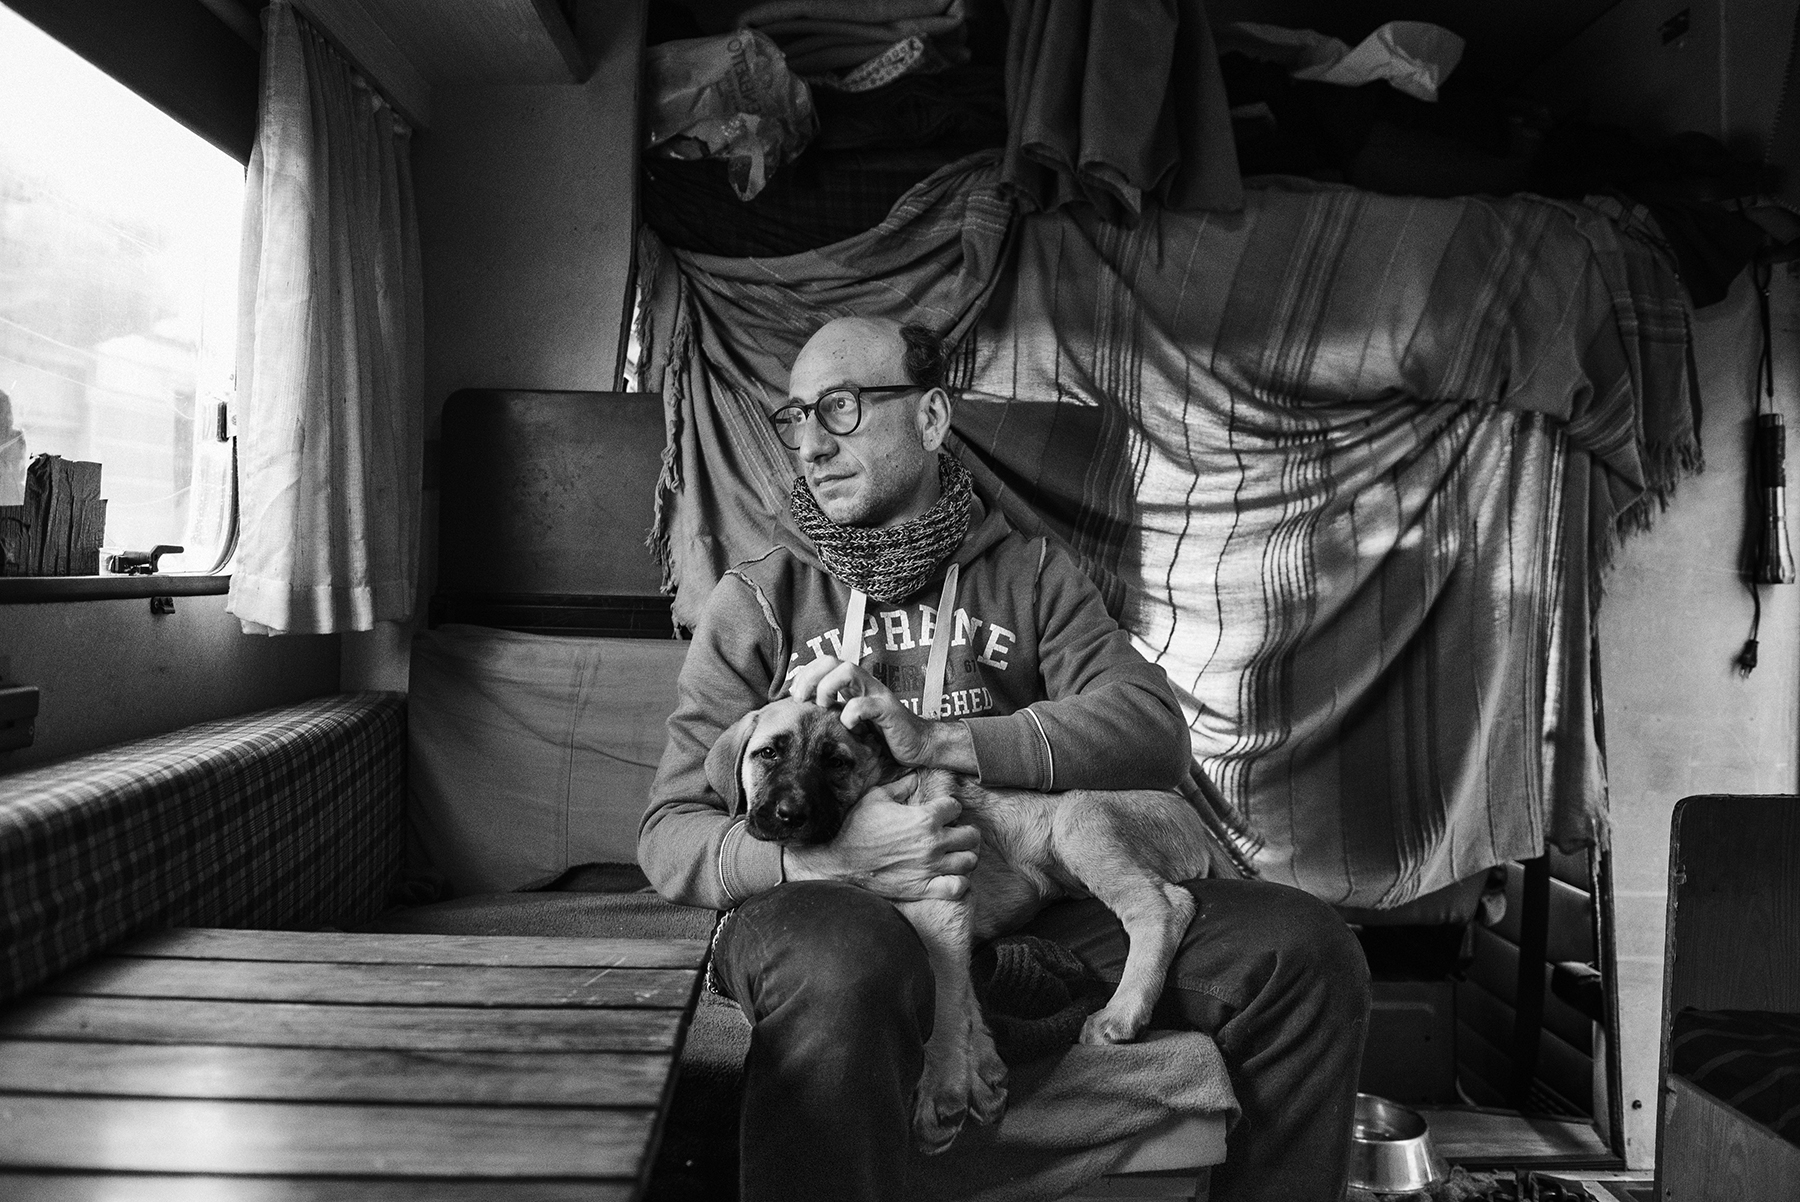 Marcello Fonti (43) look out of the window of the RV he lives in, parked outside the Public Baths of Via Agli� in the working-class district of Barriera di Milano in Turin, Italy; November 2018.Mr. Fonti has not a home since 2003, moving around Torino from place to place in his old RV; during the summer he bath himself open air, in rivers and streams, but in the cold months he goes to the Public Baths for a hot shower.